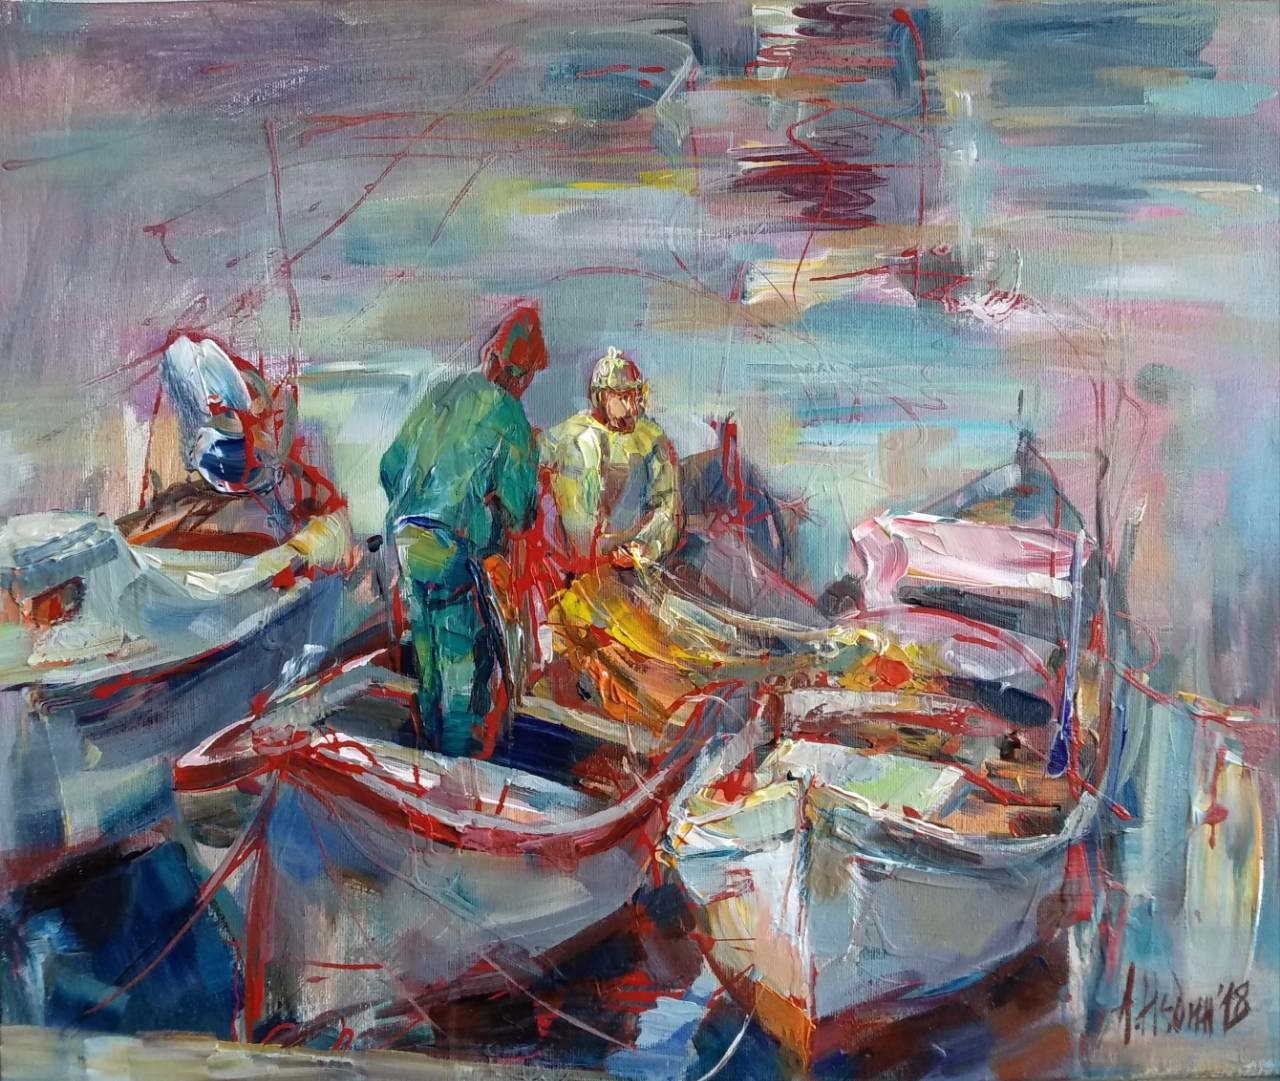 """Fishing Memories ""Painting Figurative Composition Angelina Nedin 2018"